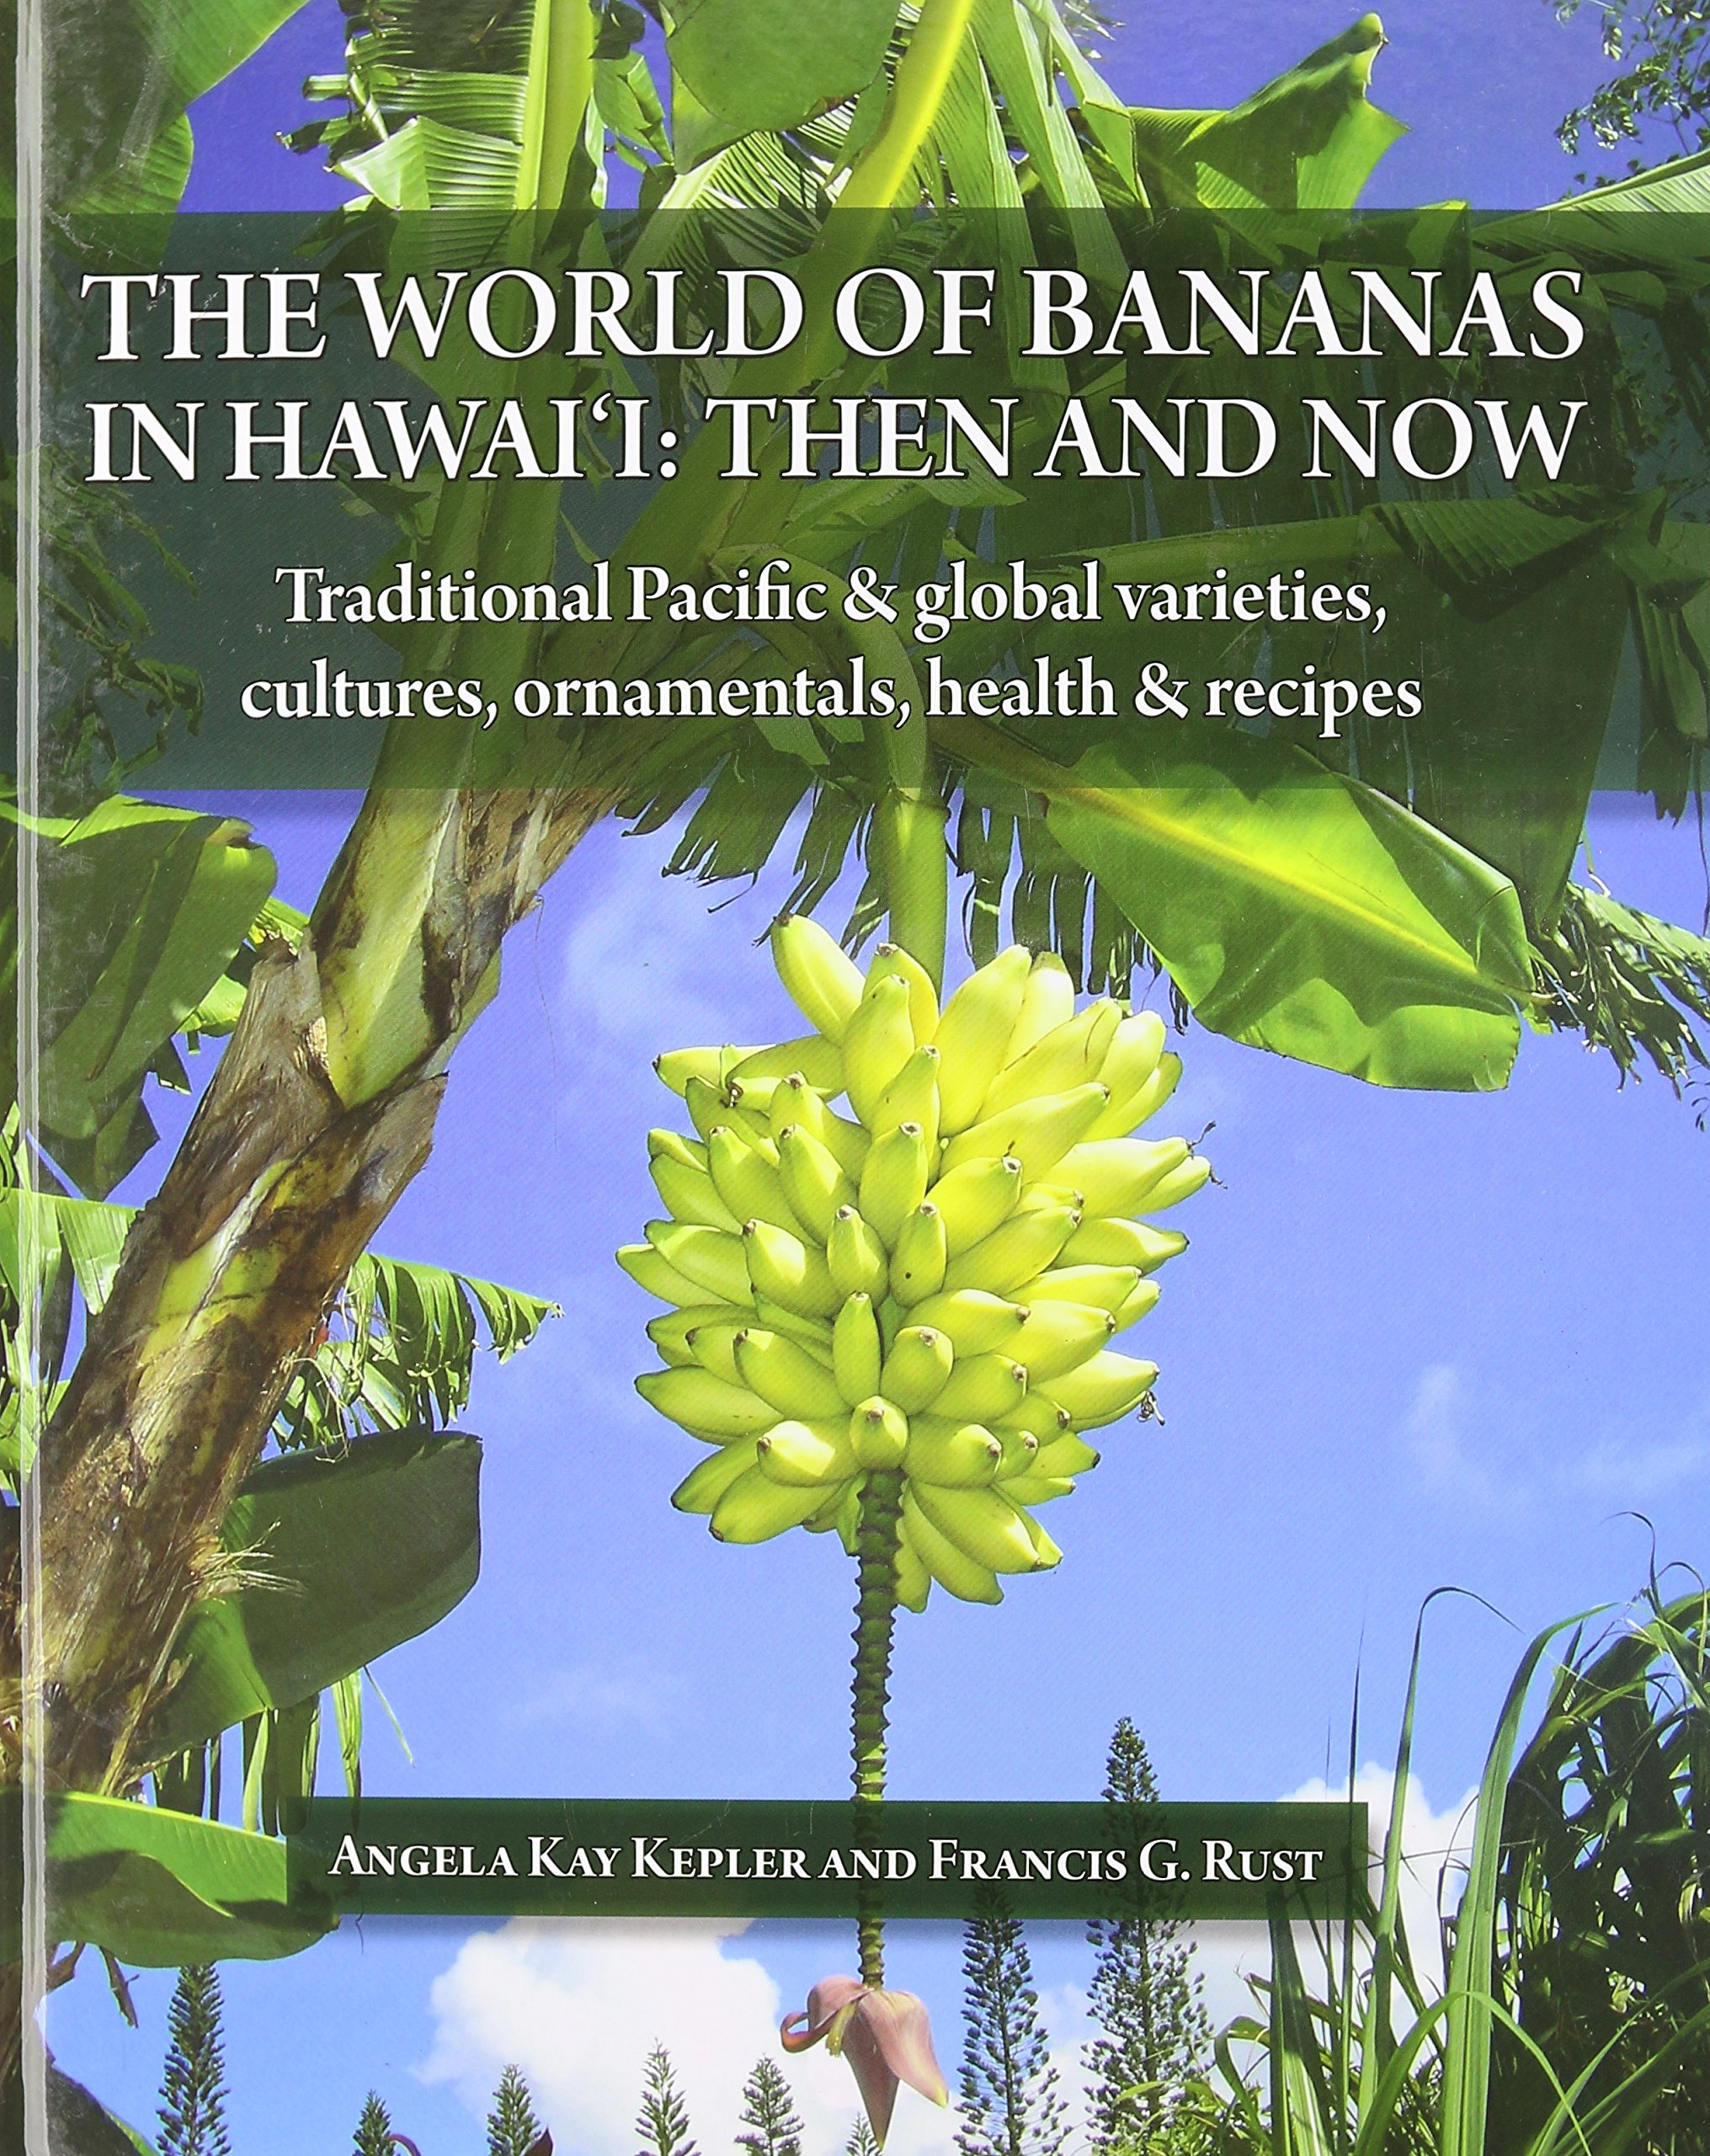 The World of Bananas in Hawaii Then and Now Angela Kay Kepler